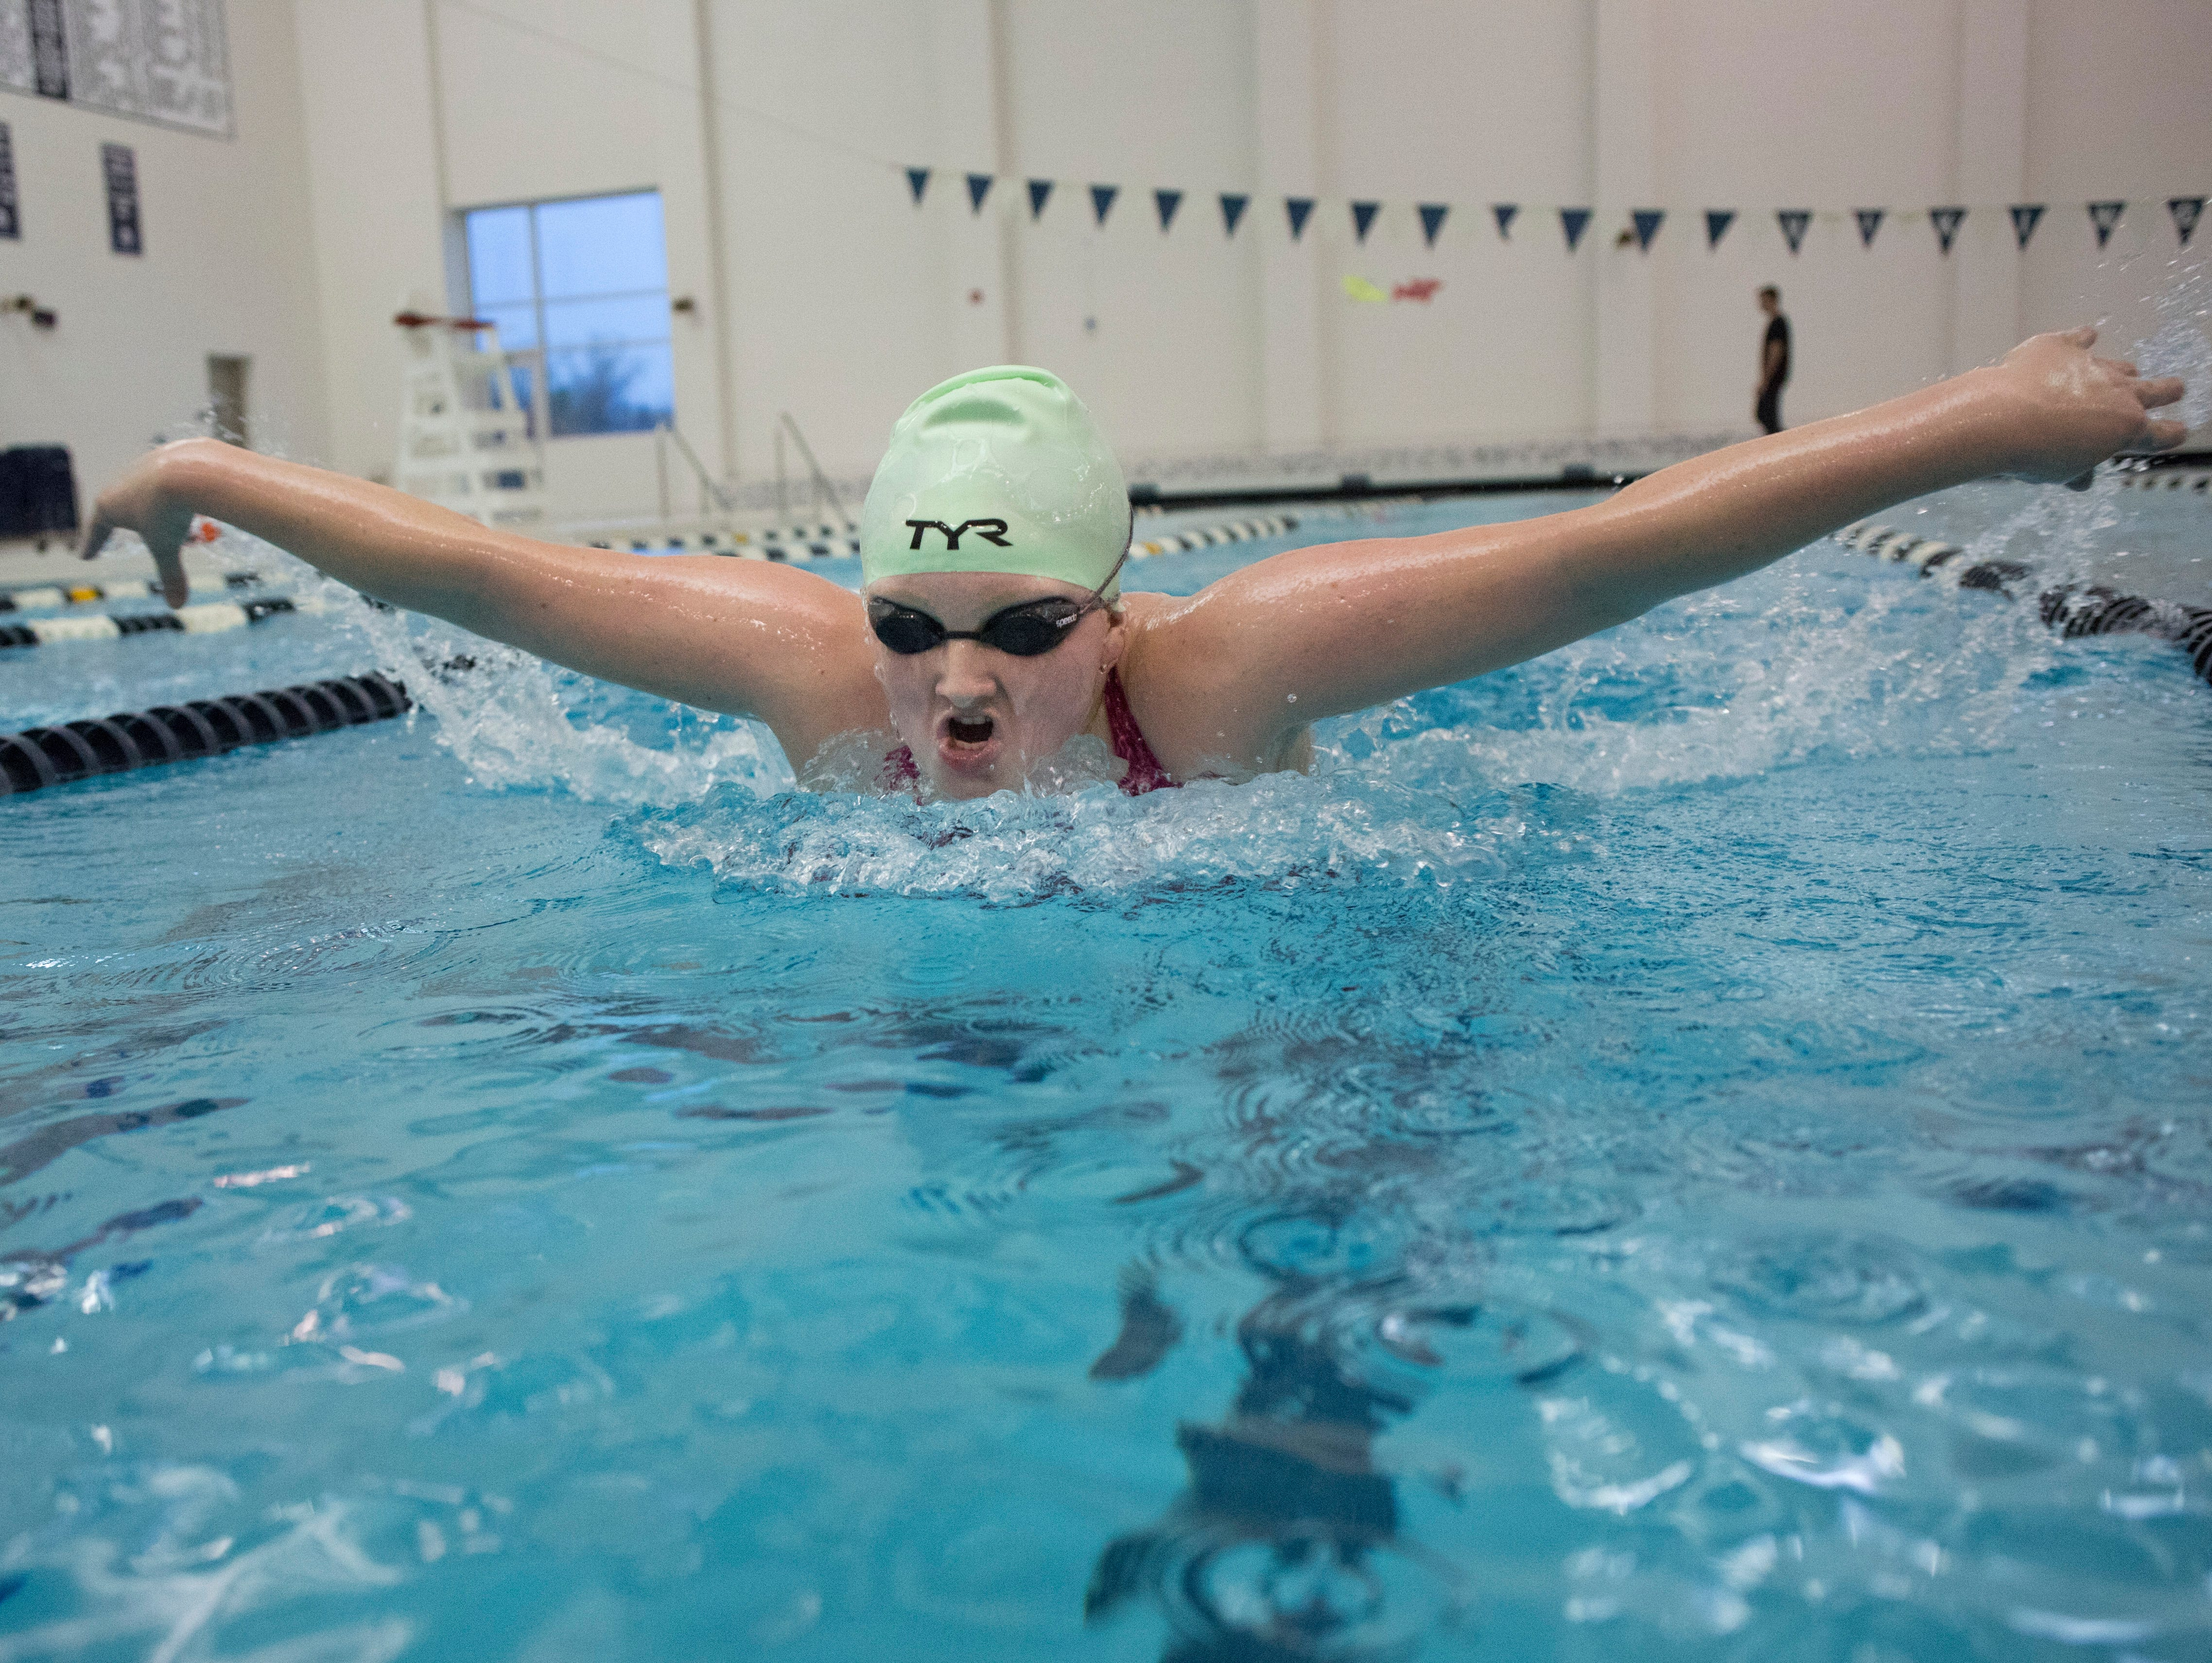 St. Clair freshman Maddie Leaver does the butterfly stroke during practice Wednesday, November 18, 2015 in Marysville.